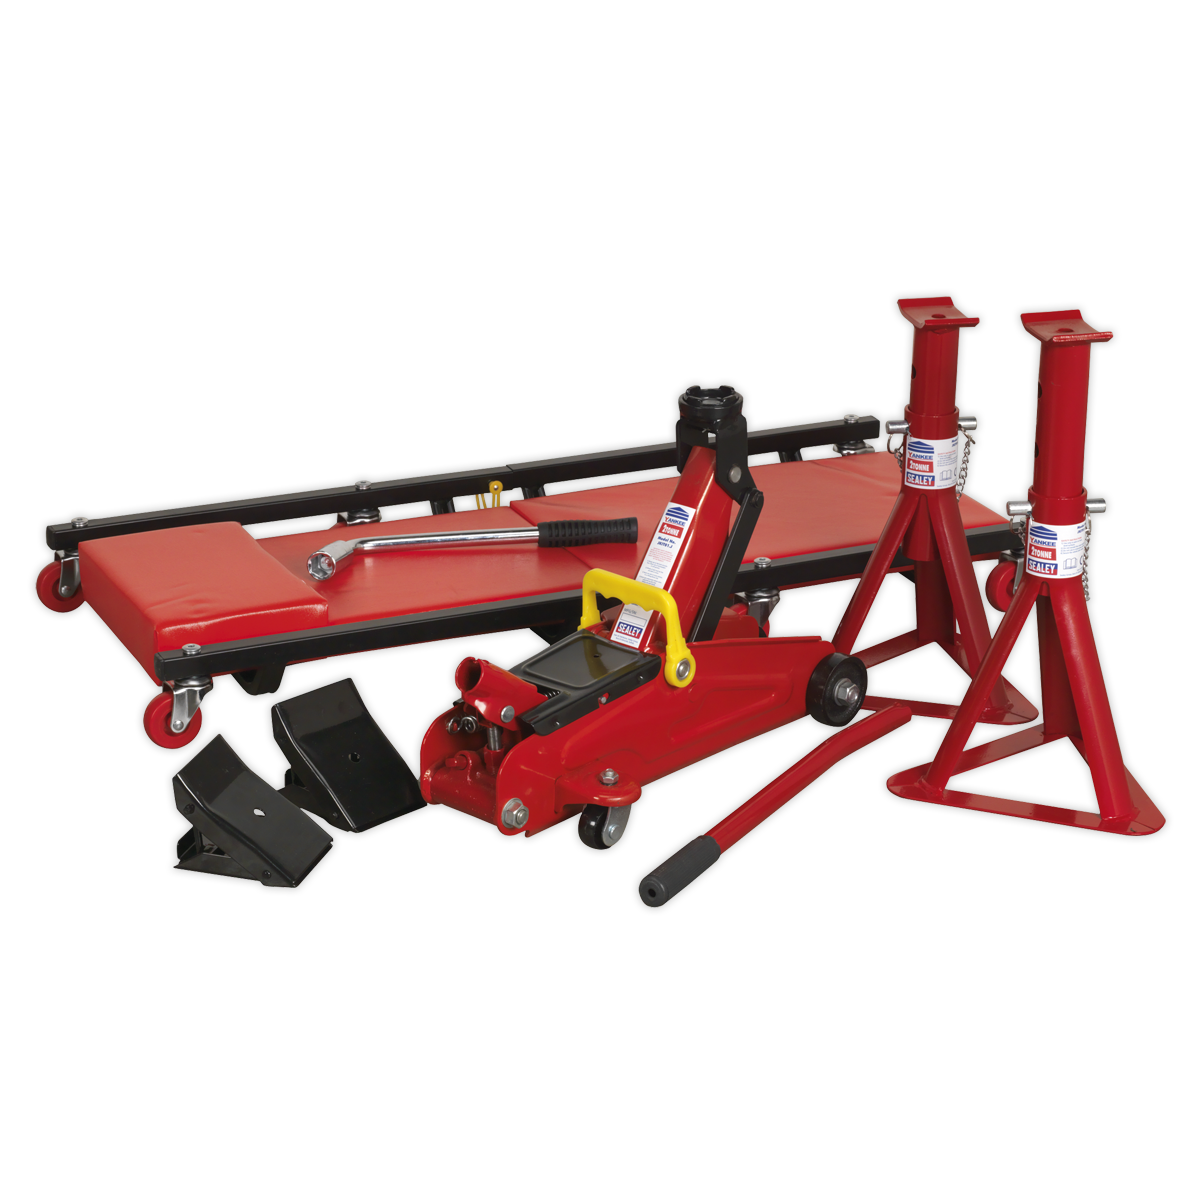 Lifting Kit 5pc 2tonne (Inc Jack\, Axle Stands\, Creeper\, Chocks & Wrench)